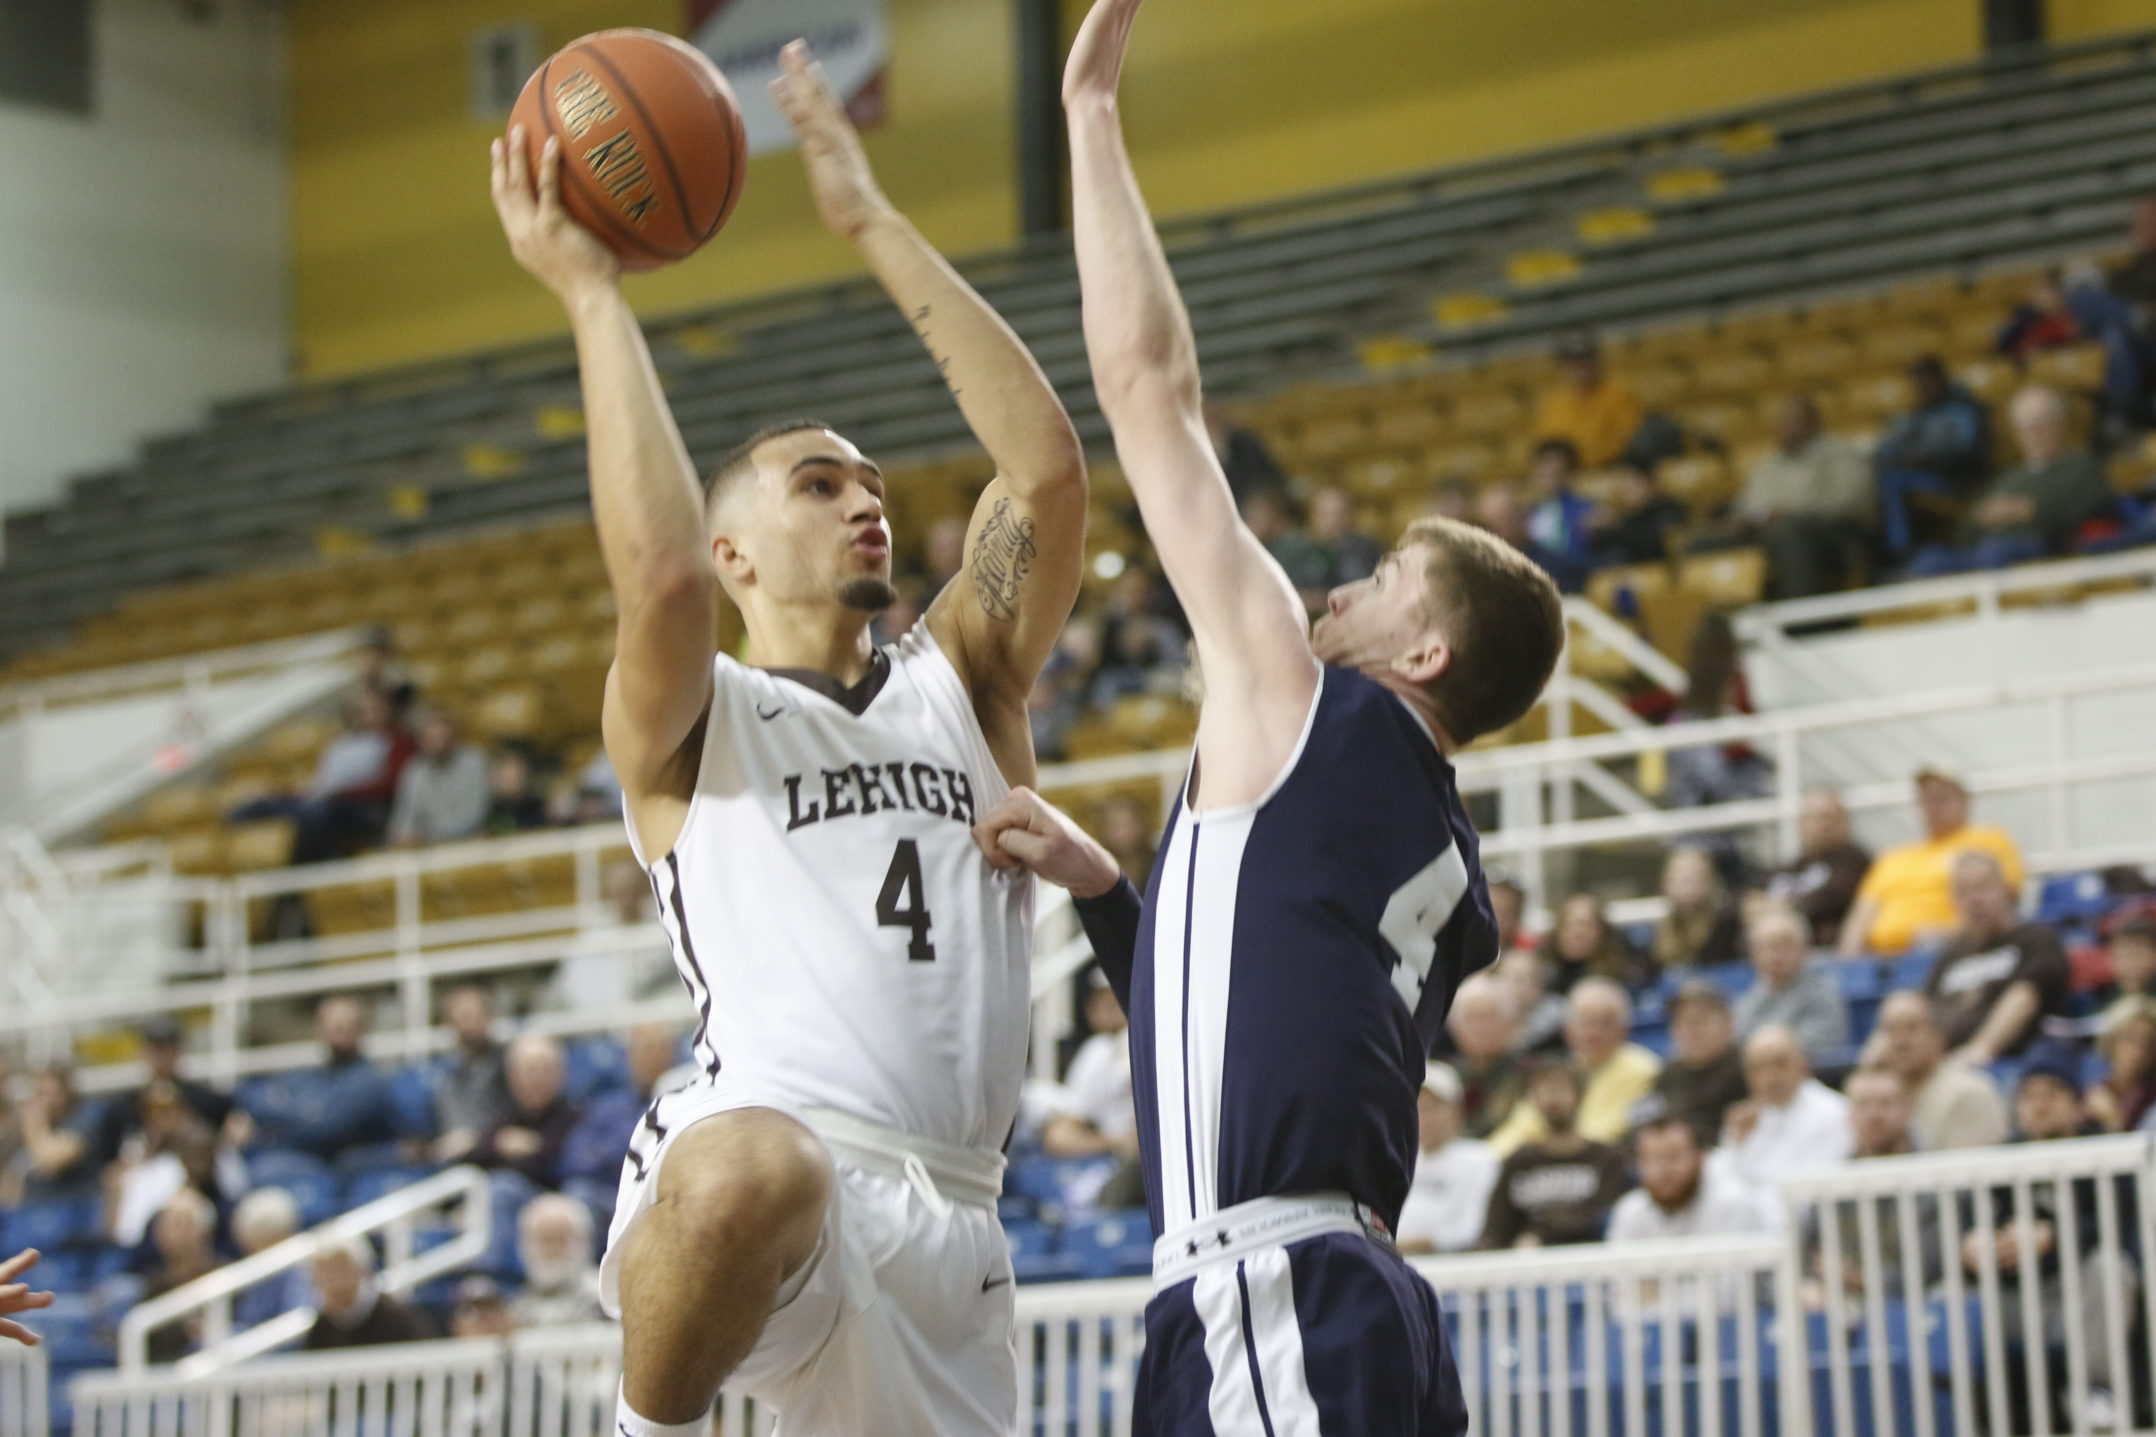 Lehigh freshman guard Caleb Bennett puts up a shot against Yale guard Noah Yates in Lehigh's matchup against the Ivy League opponent Wednesday, Dec. 6, 2017, at Stabler Arena. Lehigh lost the game, 86-77. (Matt Bonshak/B&W Staff).